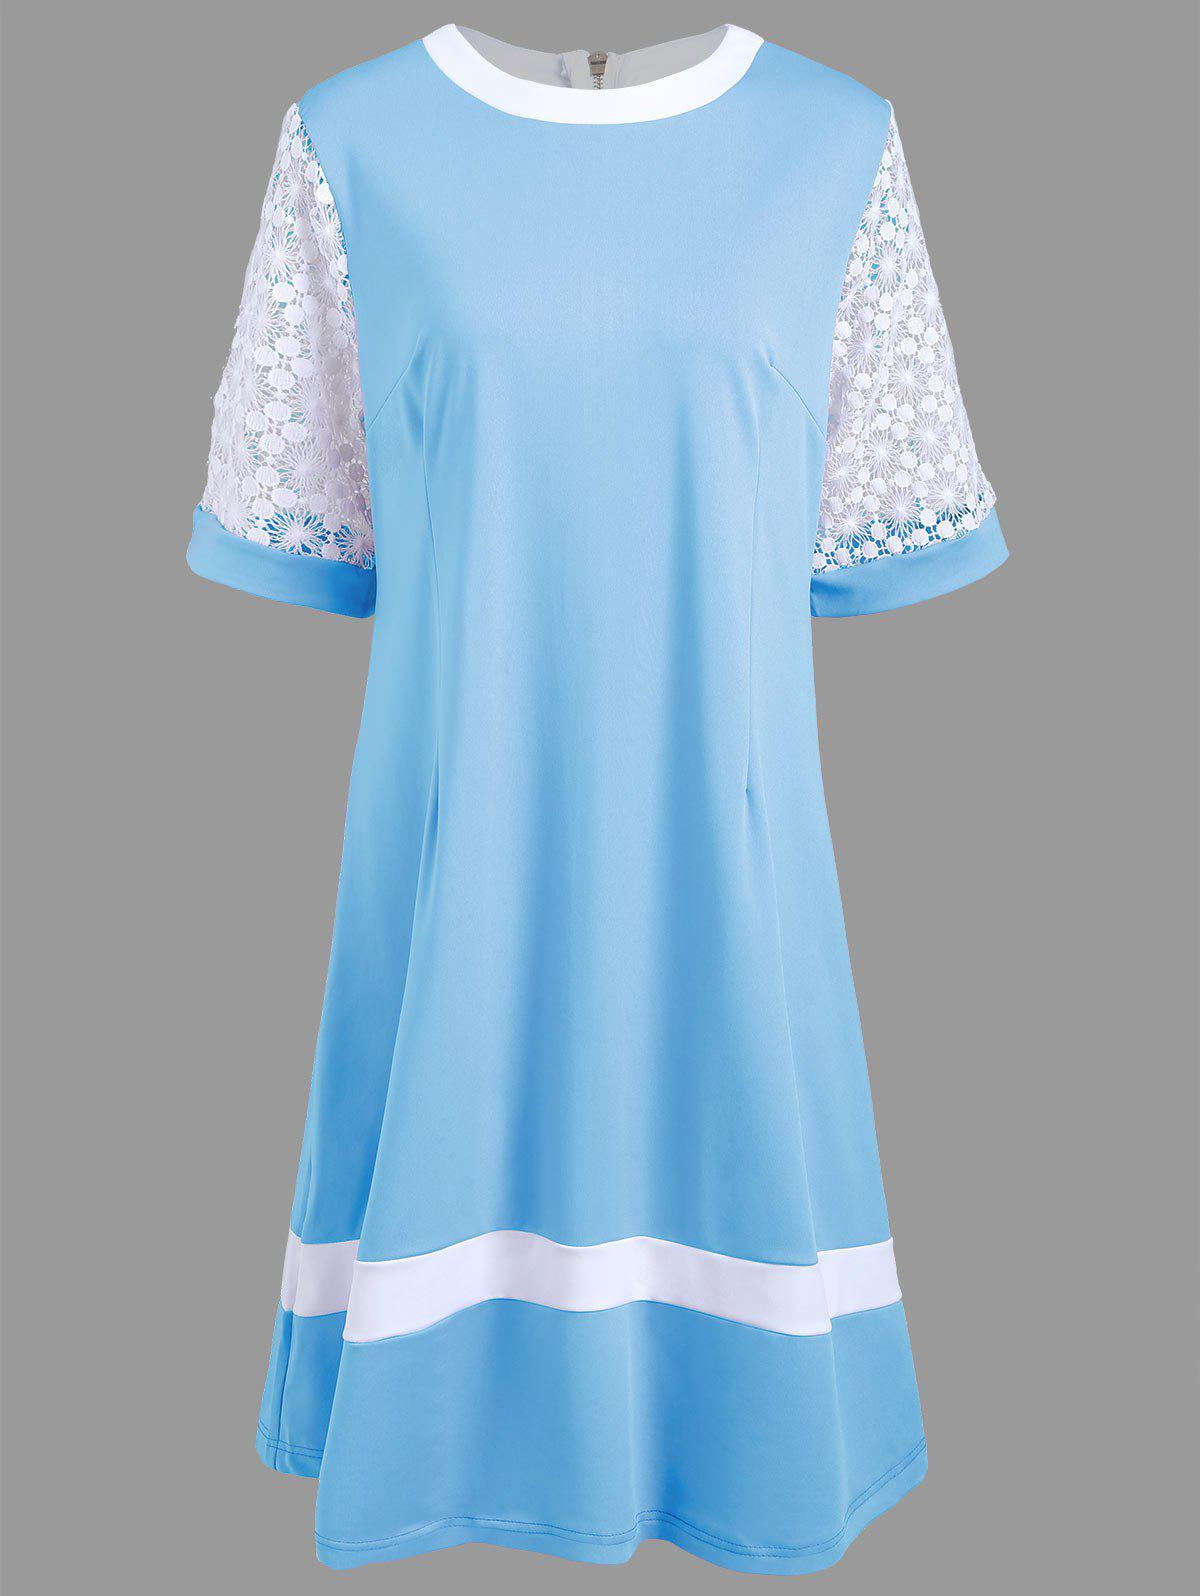 Plus Size Crochet Lace Trim A Line Dress - CLOUDY 6XL